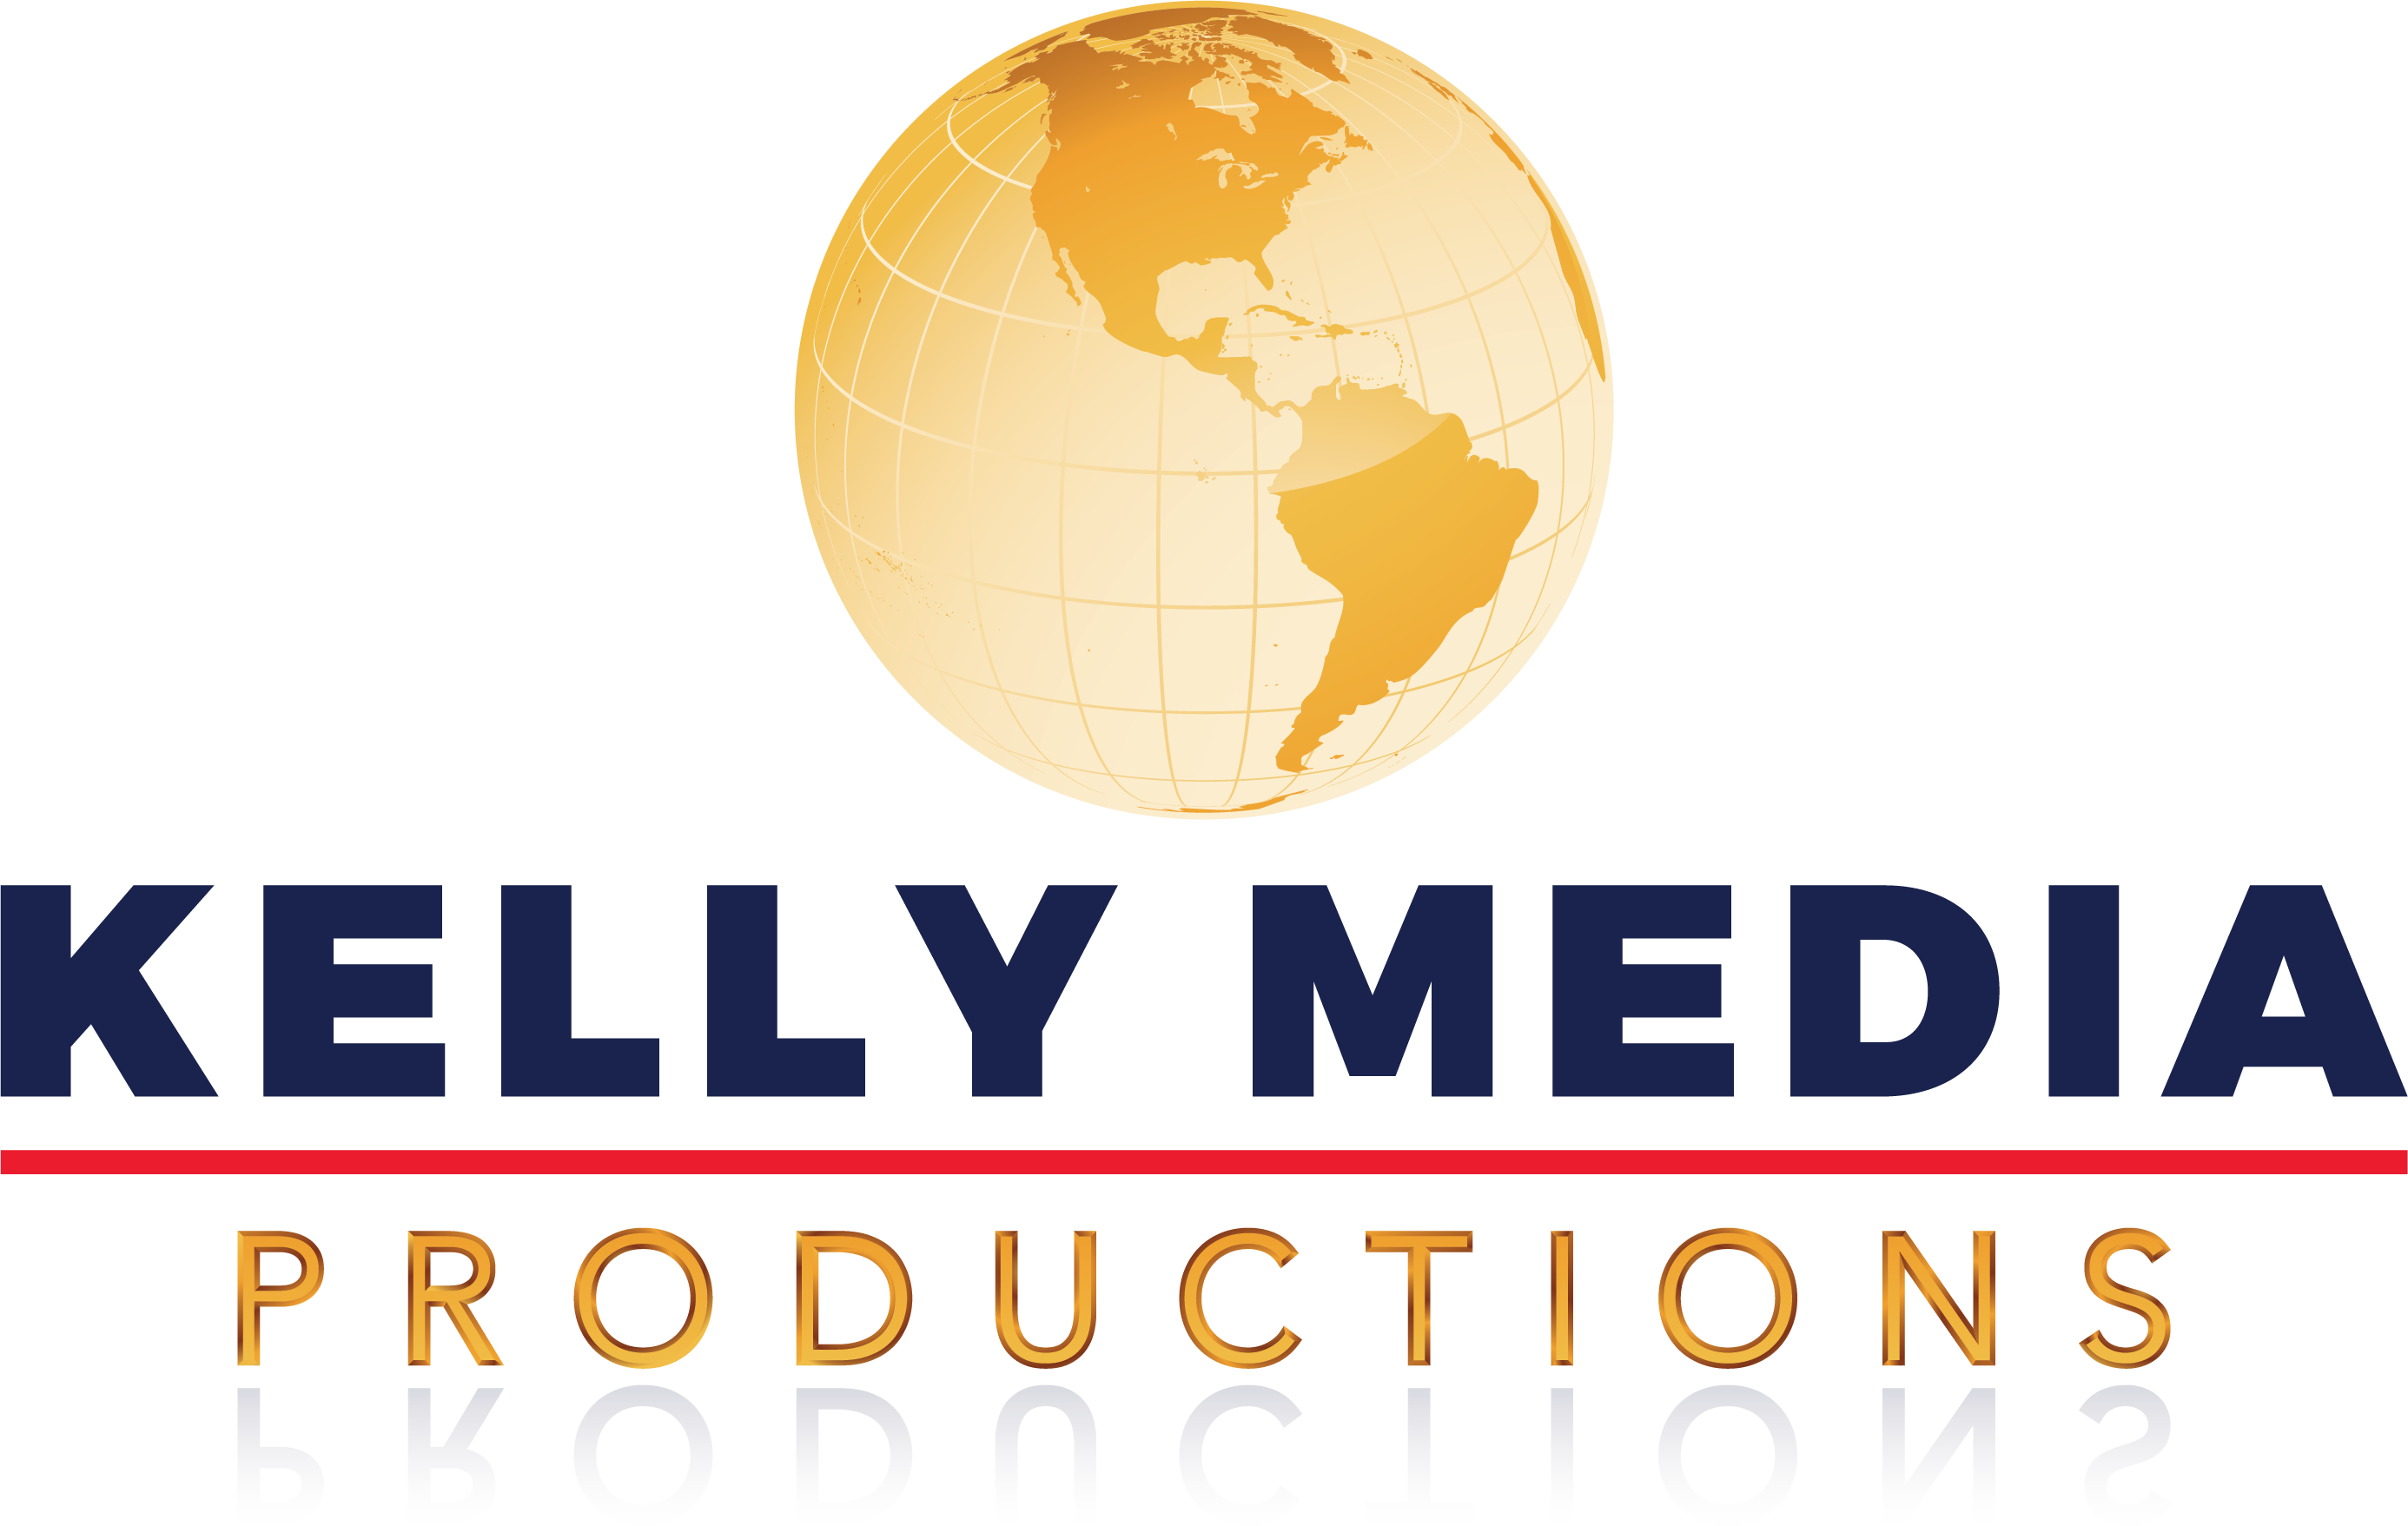 About Kelly Media